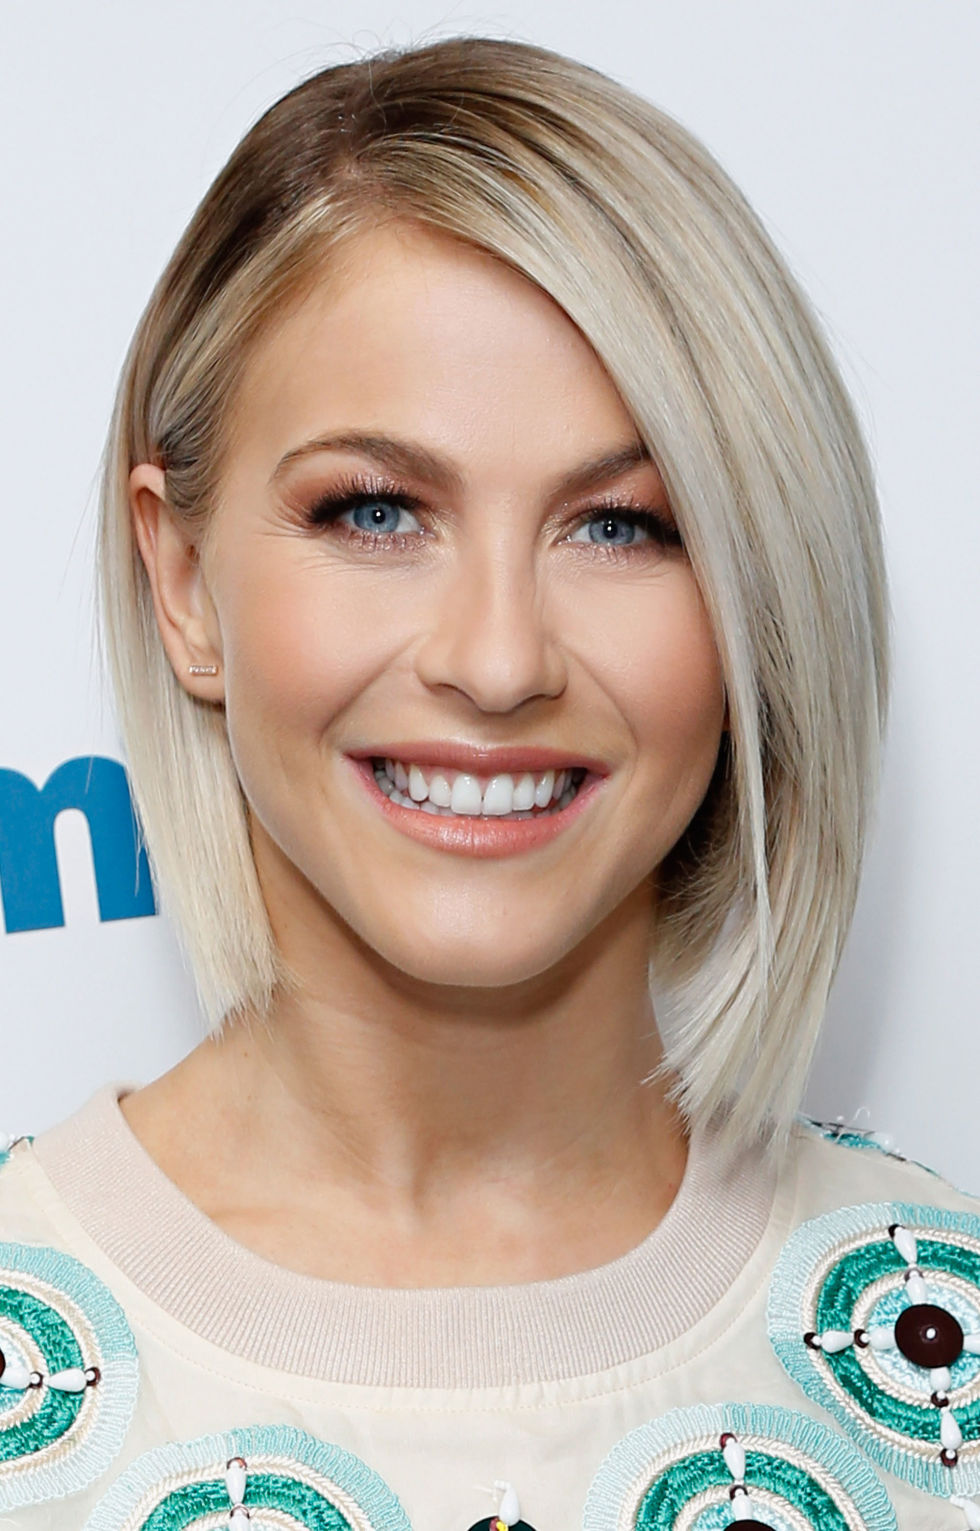 Groovy 35 Hairstyles For Round Faces Best Haircuts For Round Face Shape Short Hairstyles Gunalazisus